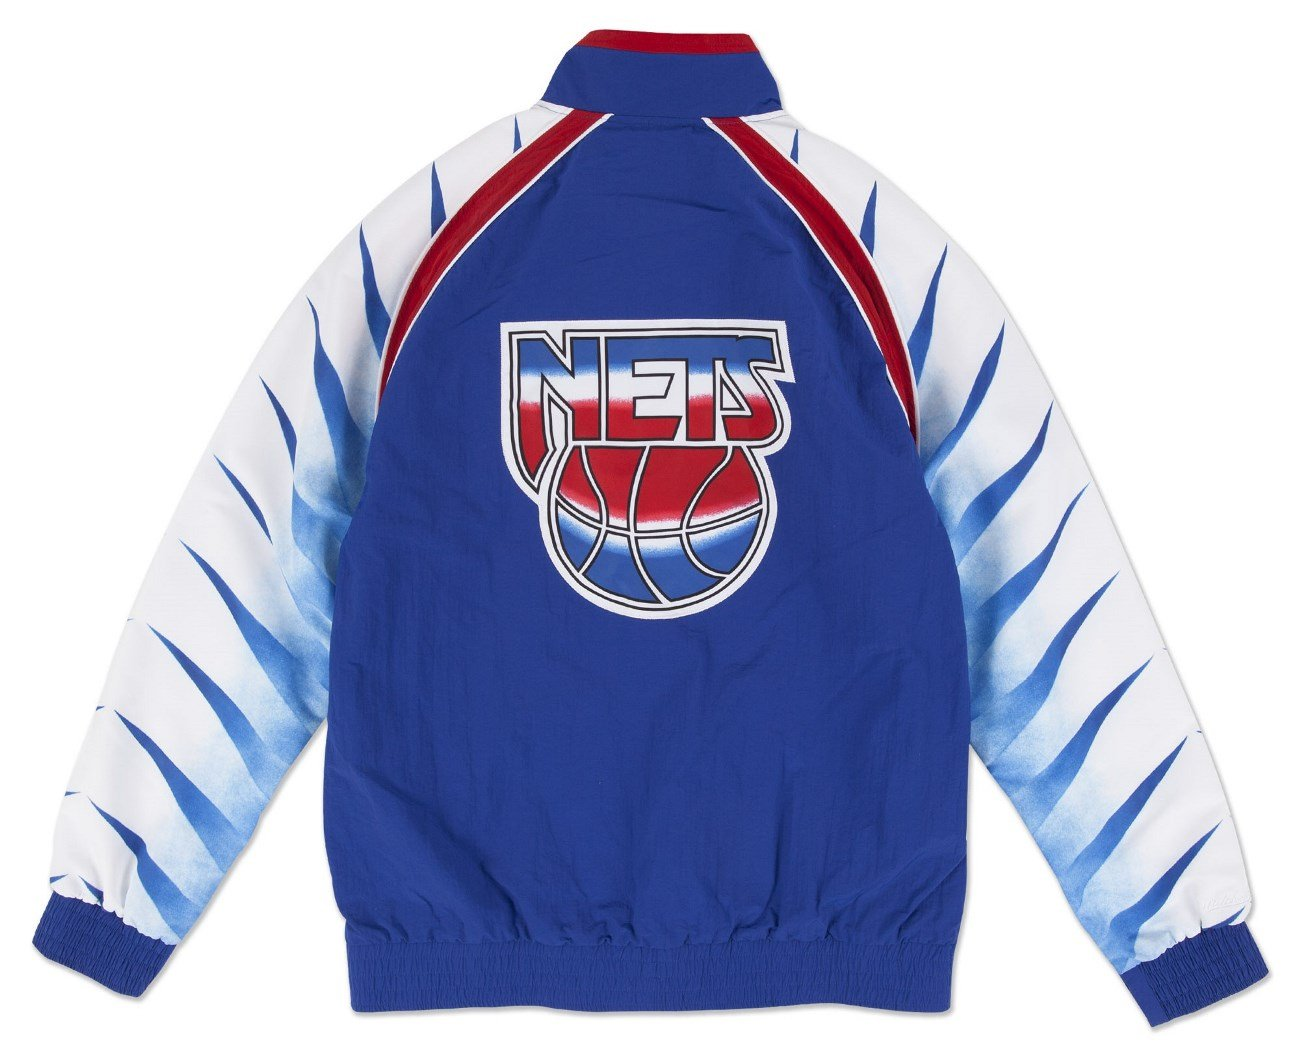 premium selection 45161 1640a Mitchell & Ness New Jersey Nets NBA Authentic 93-94 Warmup Premium Jacket